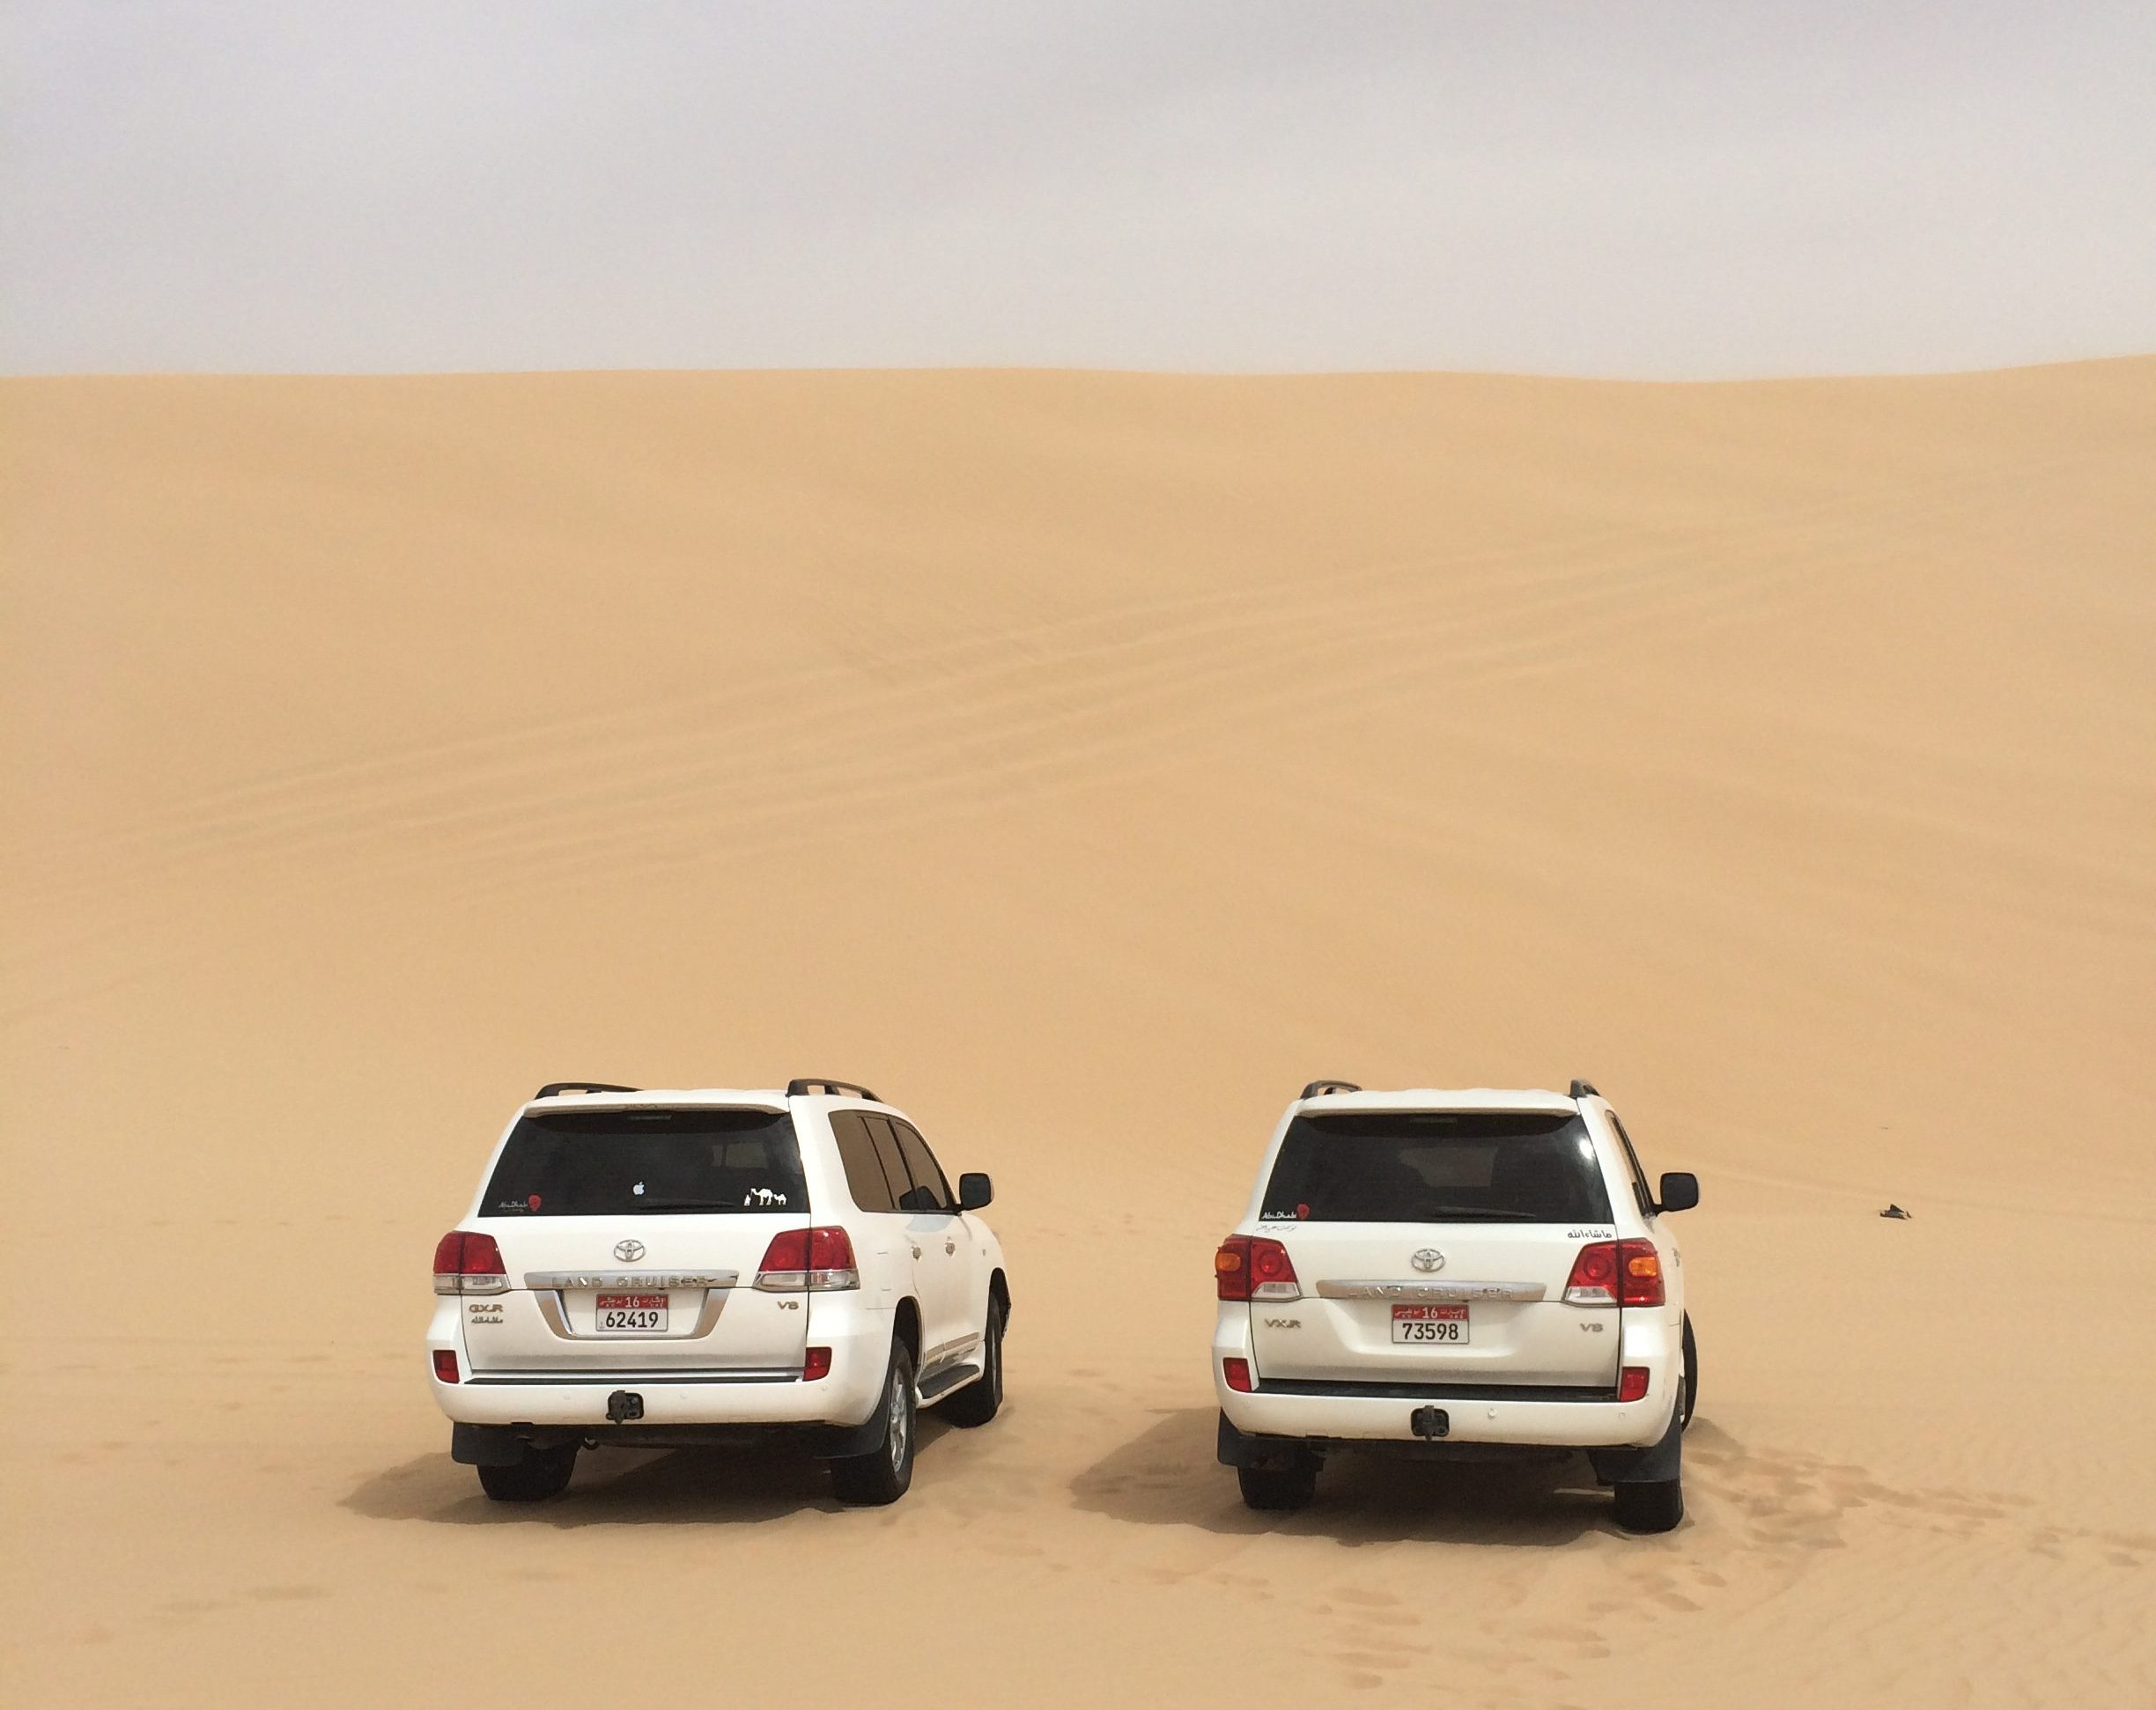 two white SUVs in the desert